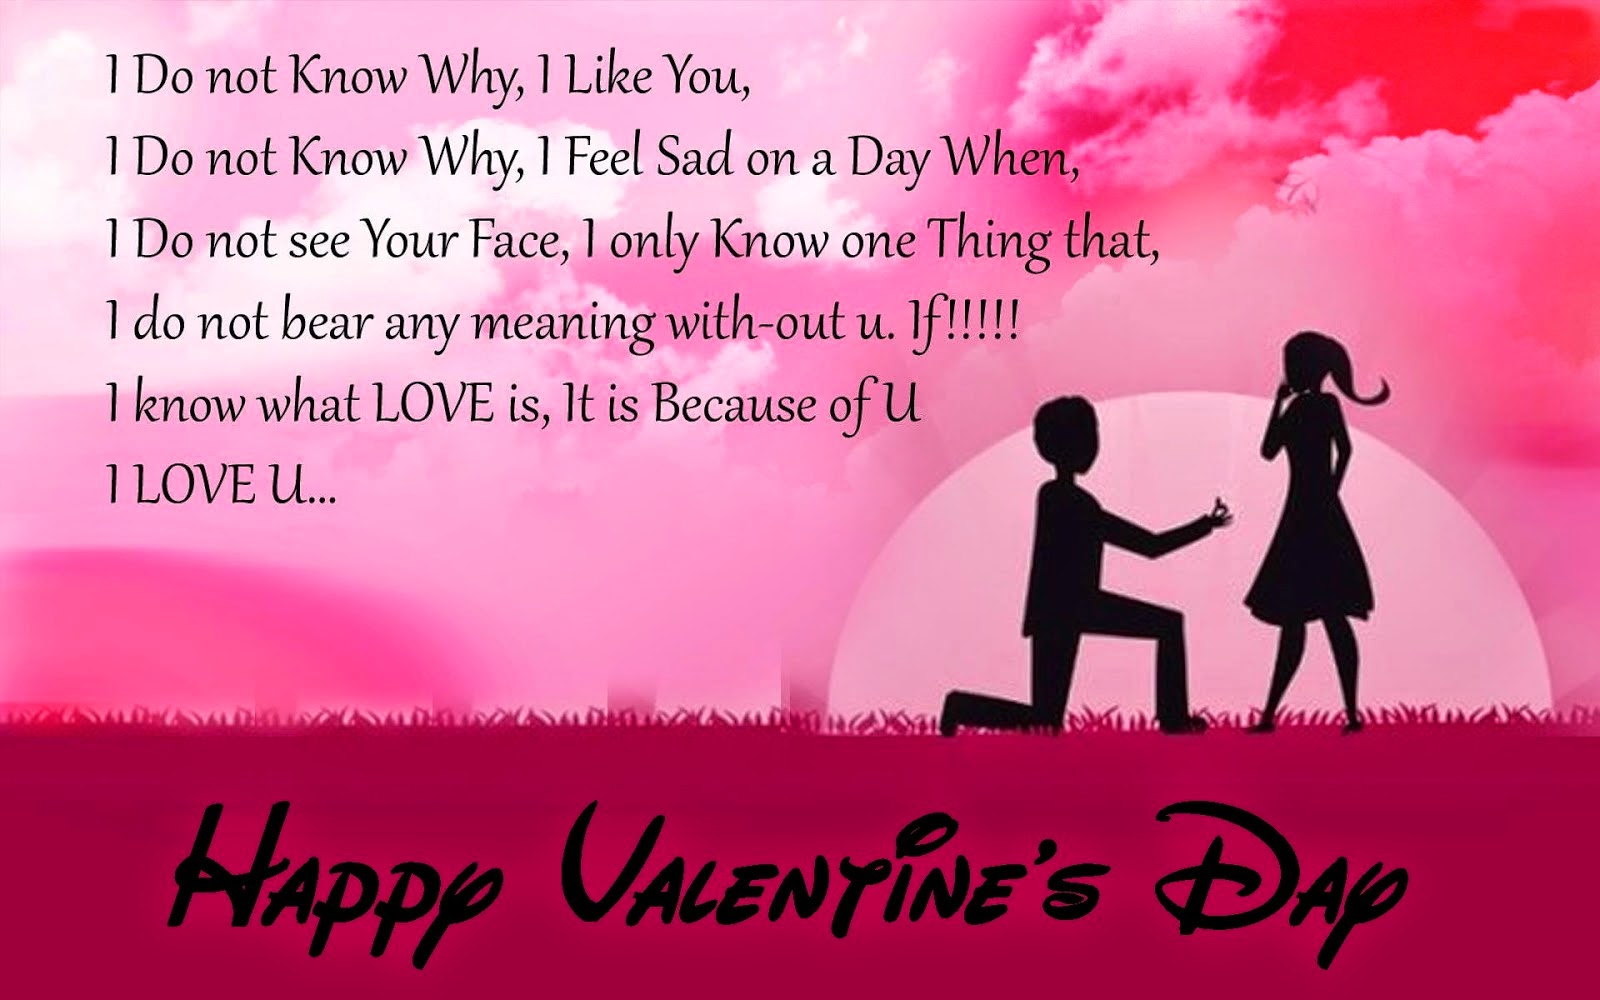 Valentines day greetings Wishes Valentines Day Cards 2017 in – Happy Valentines Day 2015 Cards